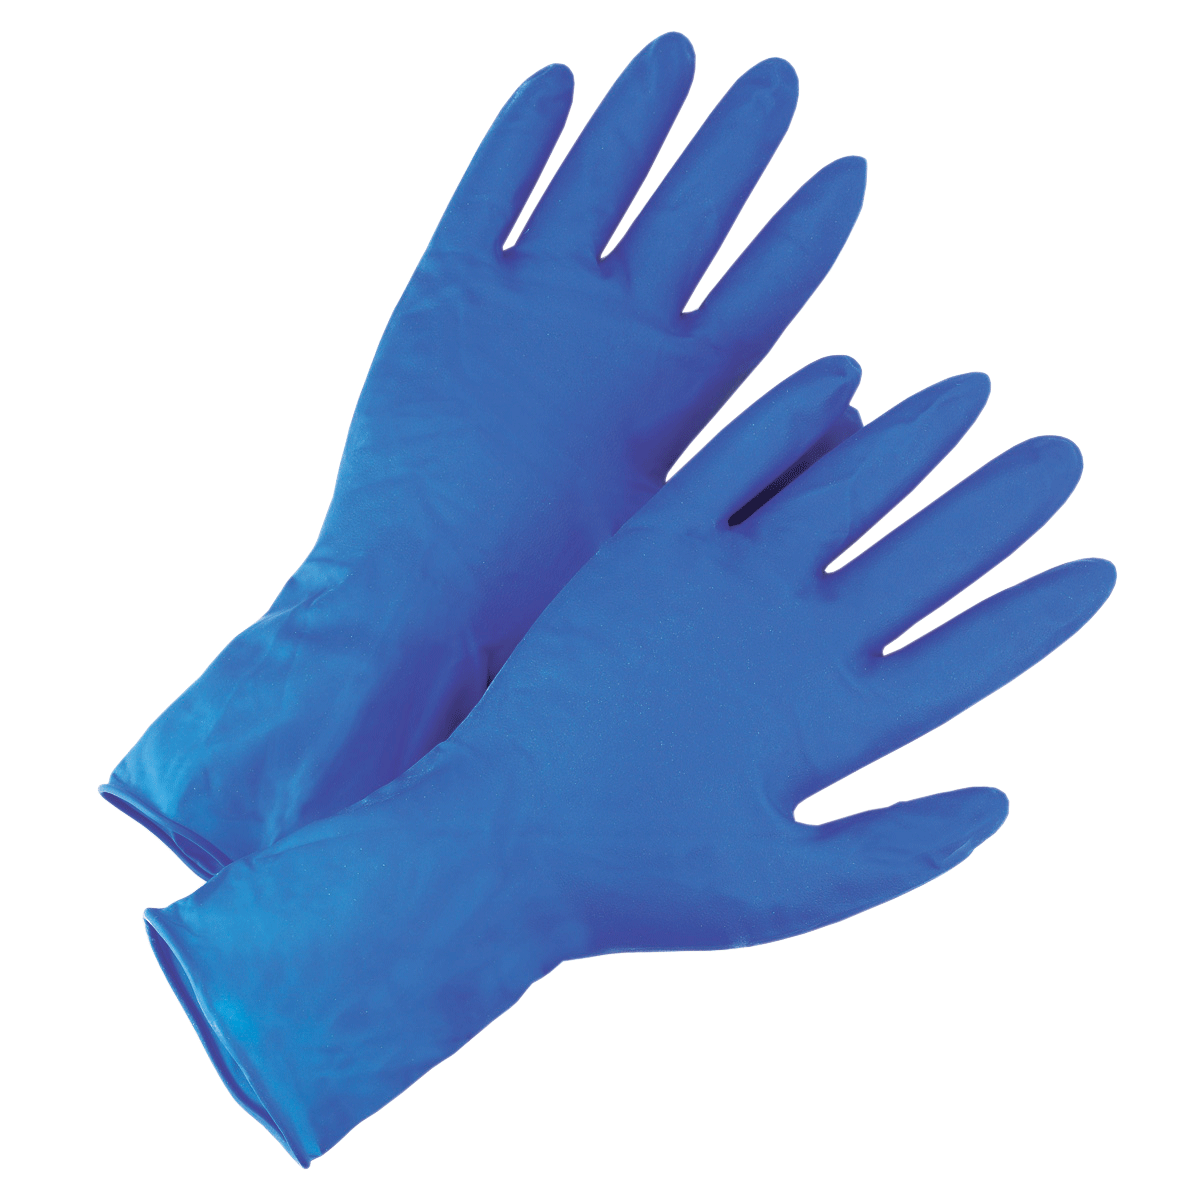 Transparent gloves clear plastic. Ribchesters